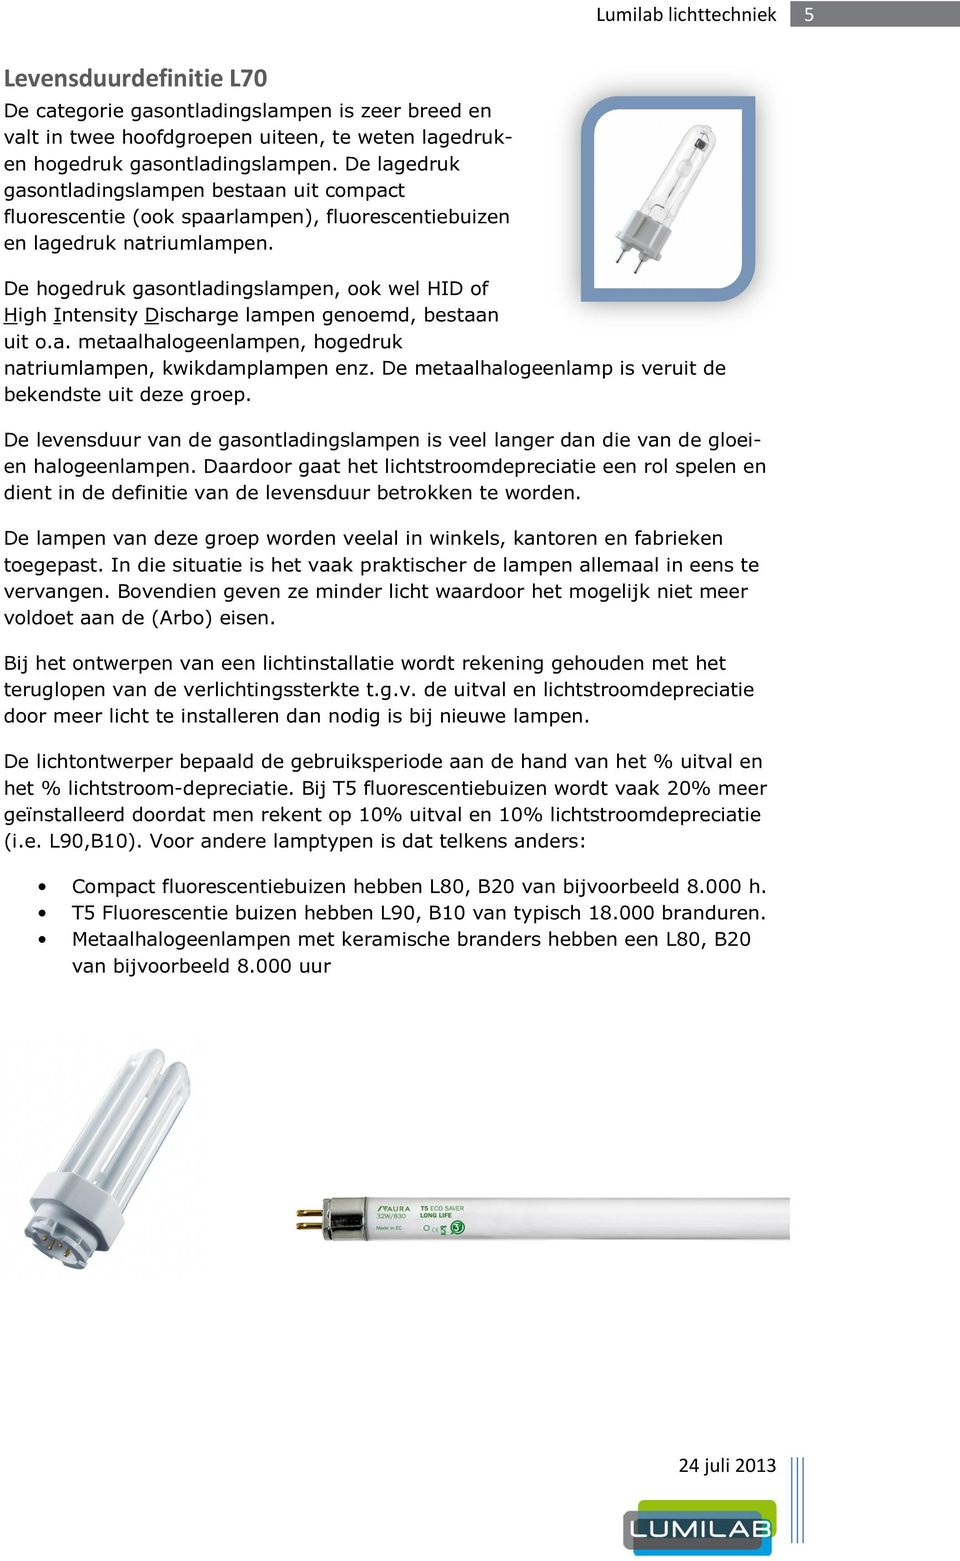 De hogedruk gasontladingslampen, ook wel HID of High Intensity Discharge lampen genoemd, bestaan uit o.a. metaalhalogeenlampen, hogedruk natriumlampen, kwikdamplampen enz.